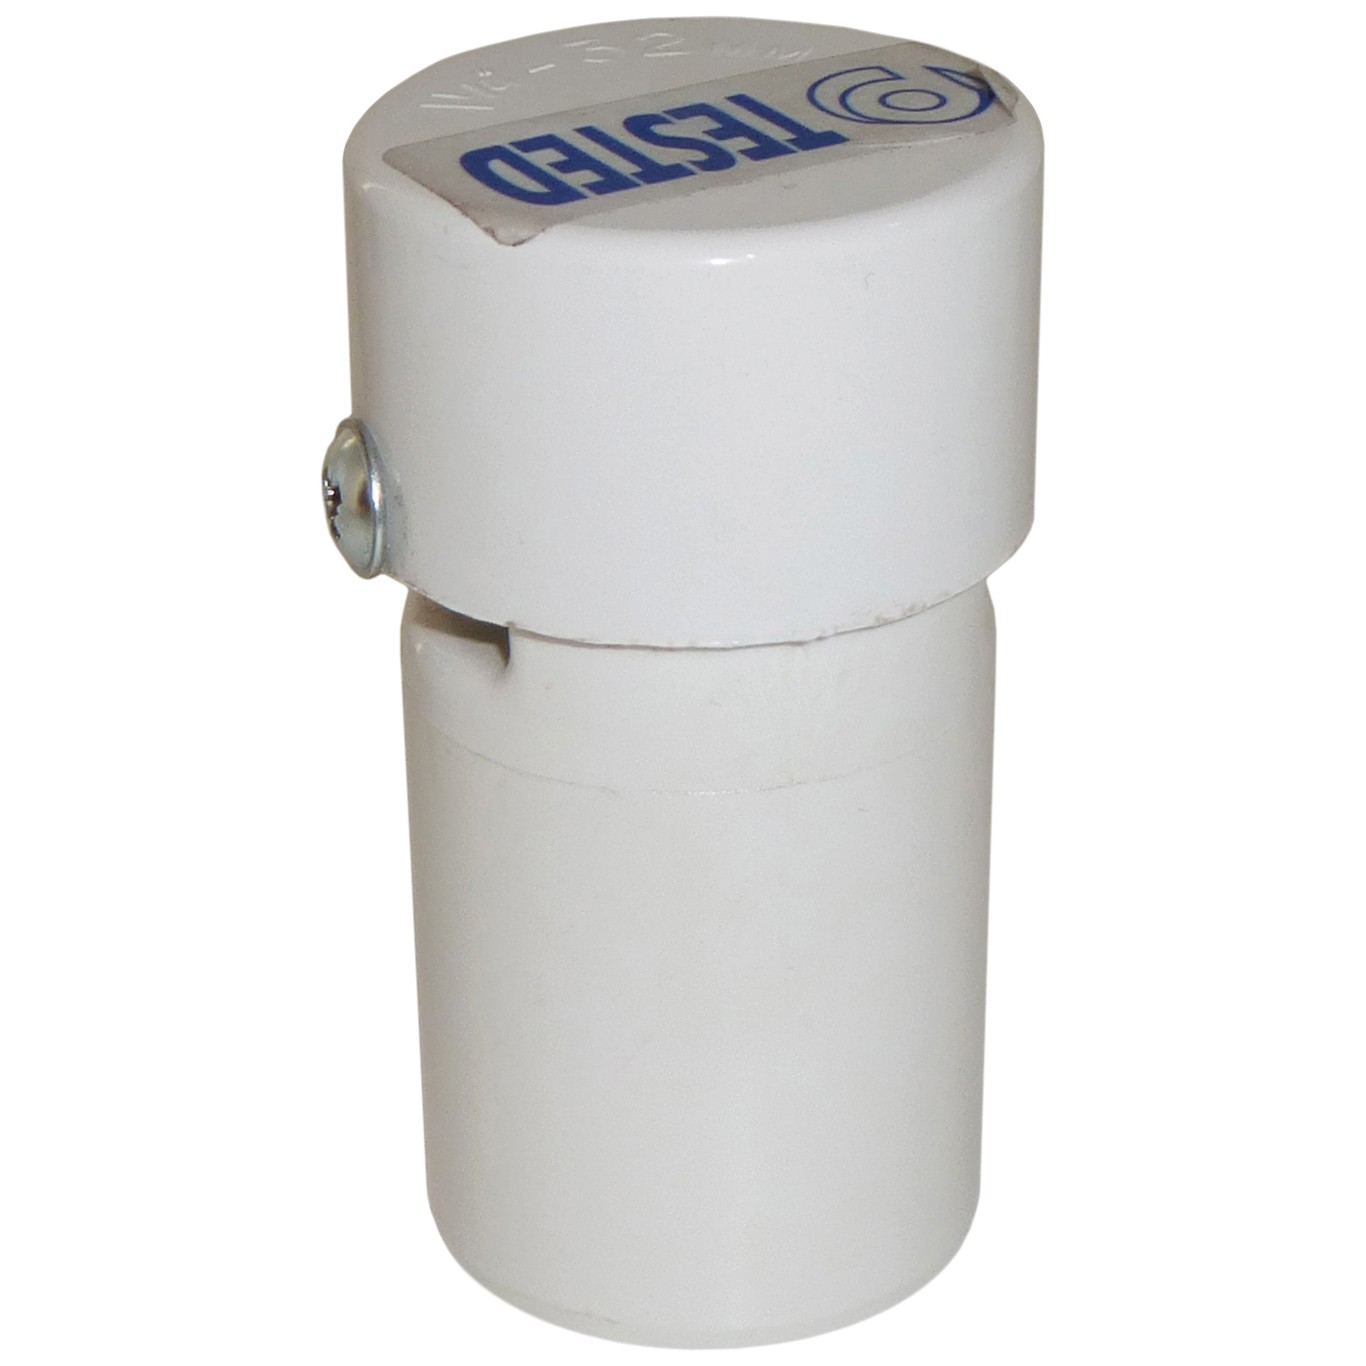 Polypipe 32mm Solvent Weld Waste Anti-Syphon Unit - White